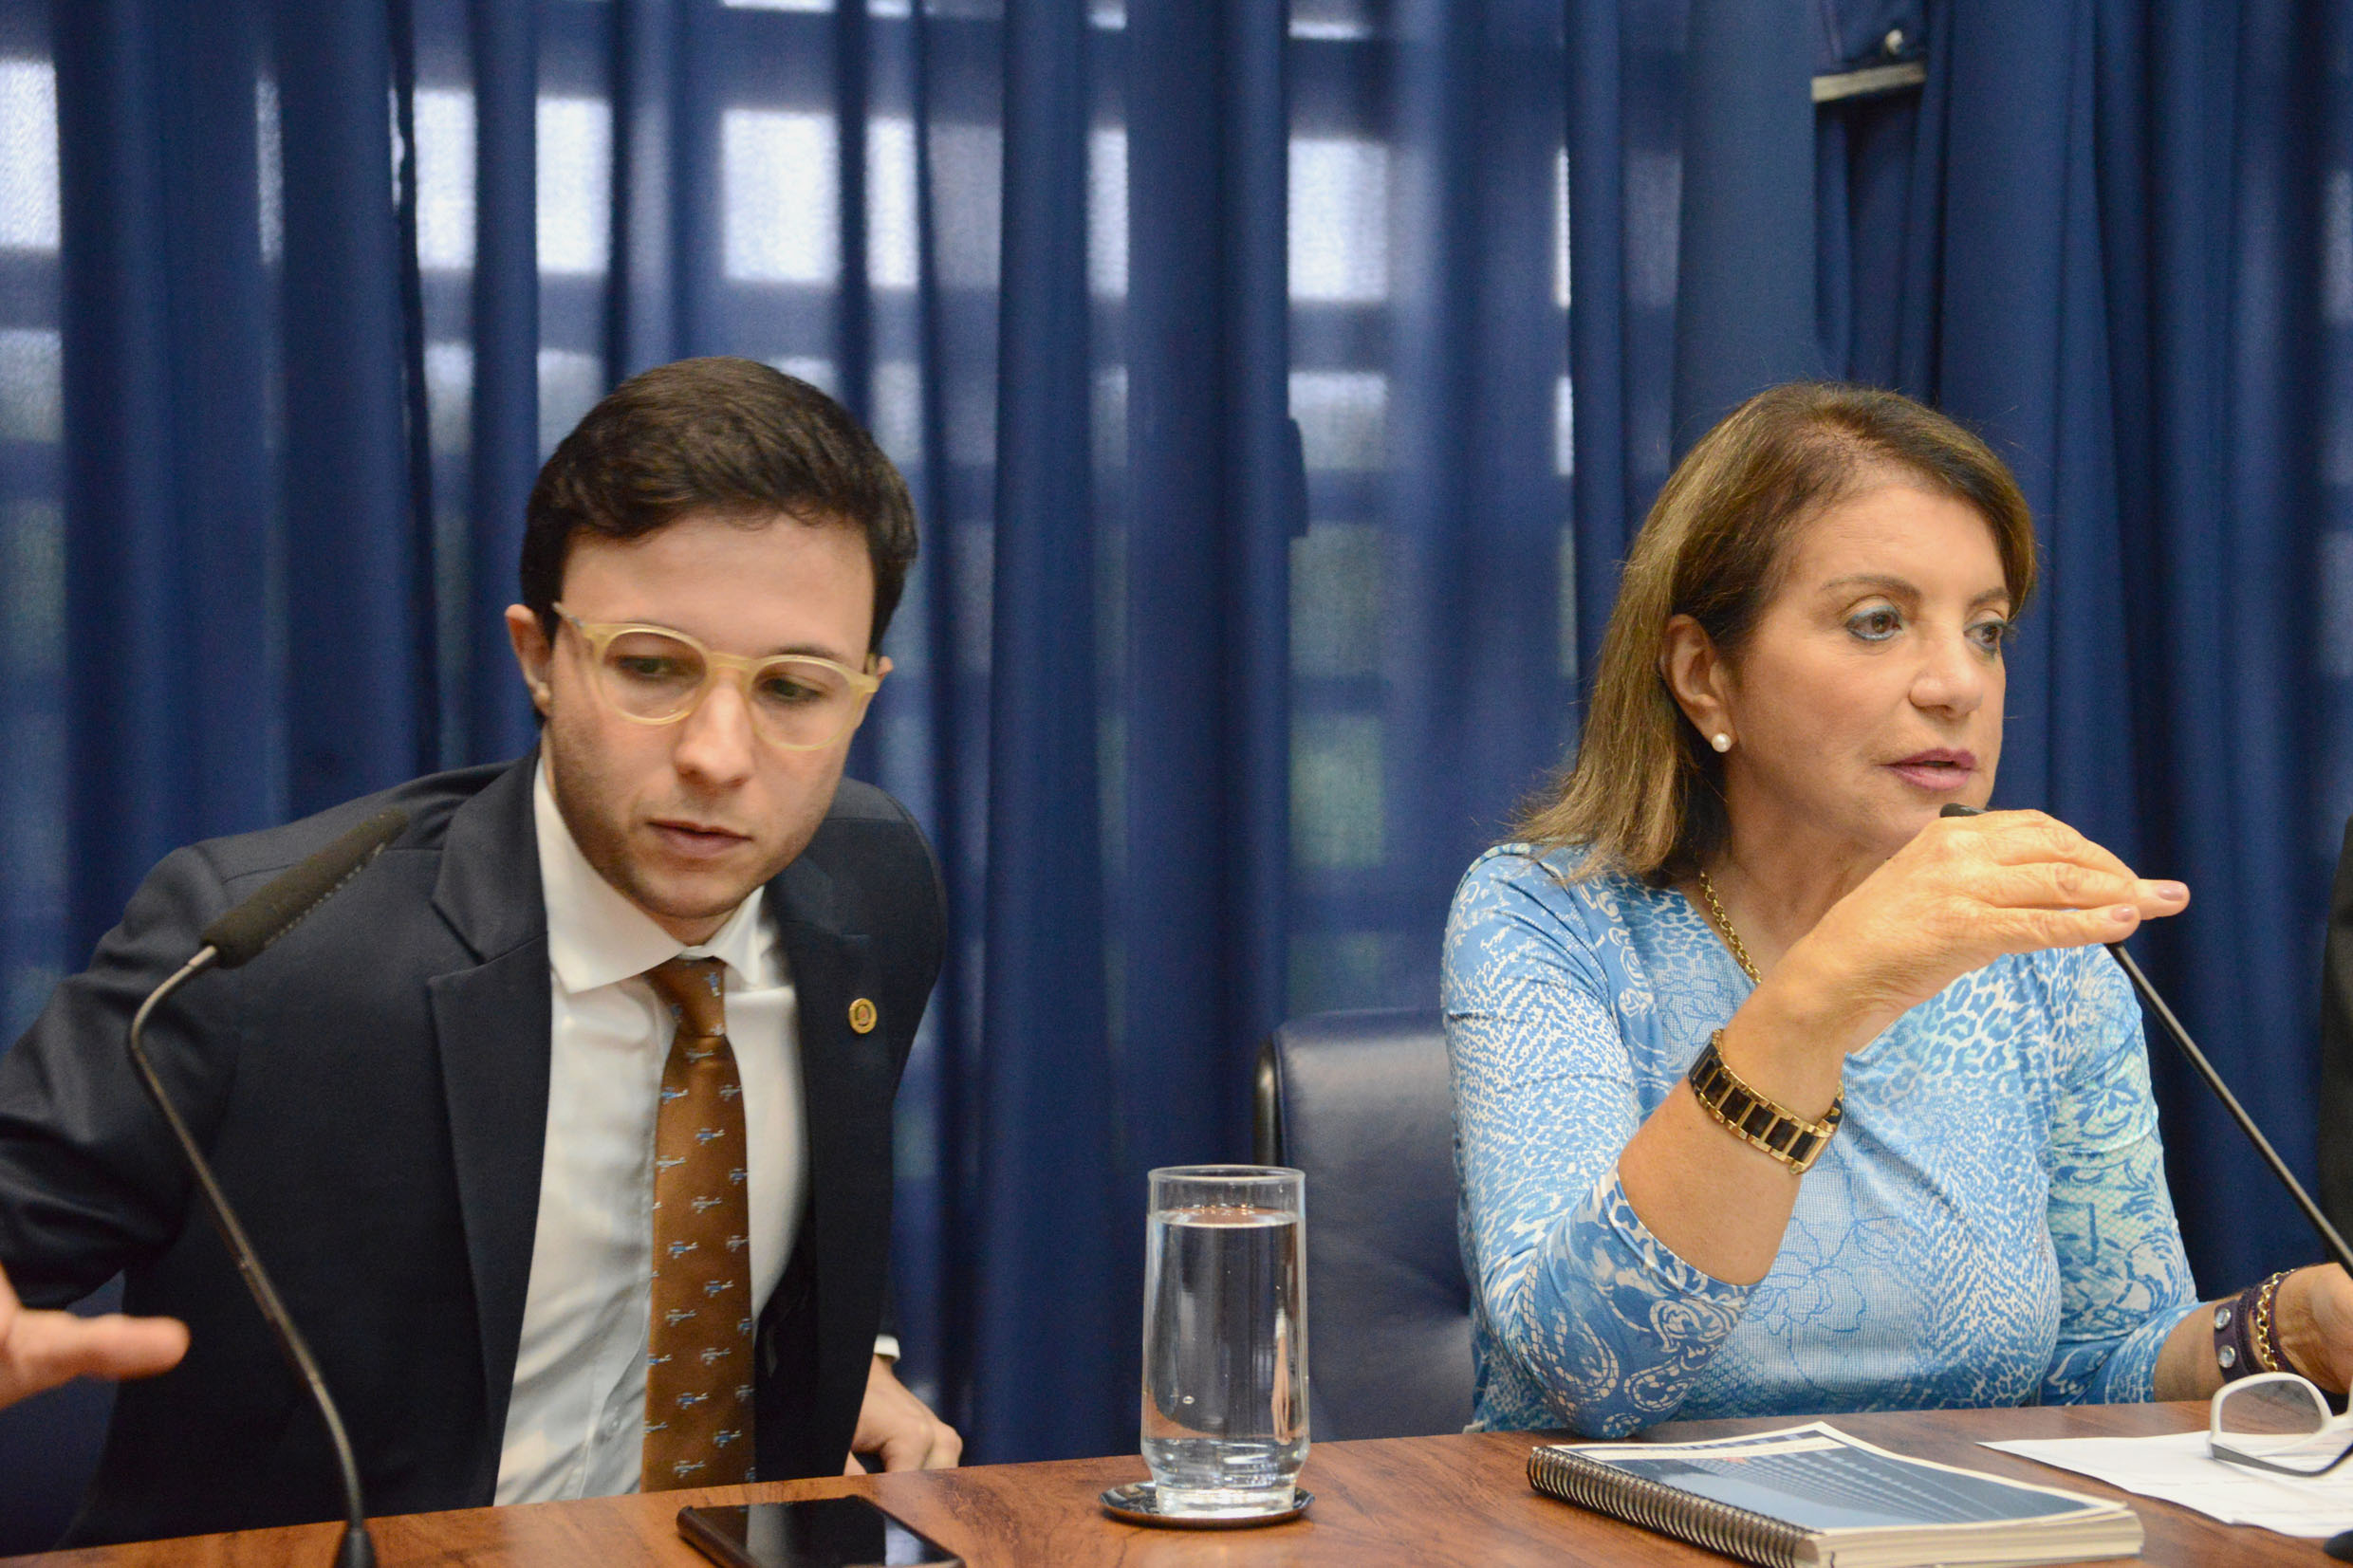 Daniel José e Professora Bebel<a style='float:right' href='https://www3.al.sp.gov.br/repositorio/noticia/N-04-2019/fg232821.jpg' target=_blank><img src='/_img/material-file-download-white.png' width='14px' alt='Clique para baixar a imagem'></a>